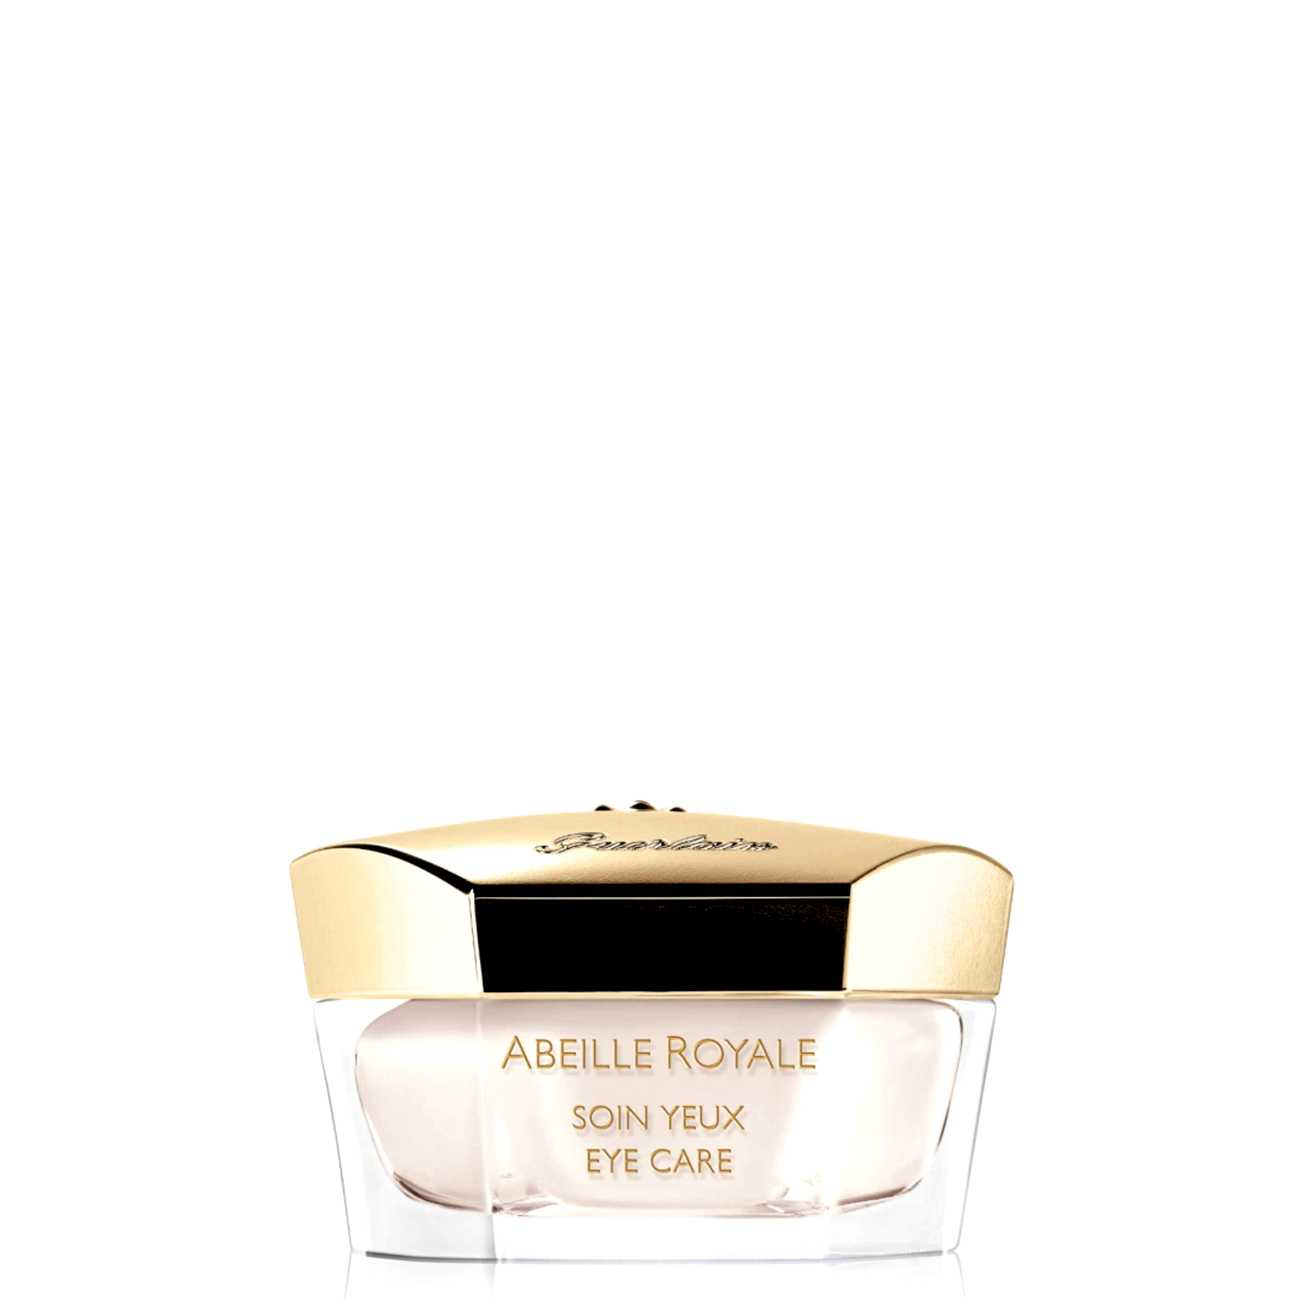 ABEILLE ROYALE EYE CARE 15 ML